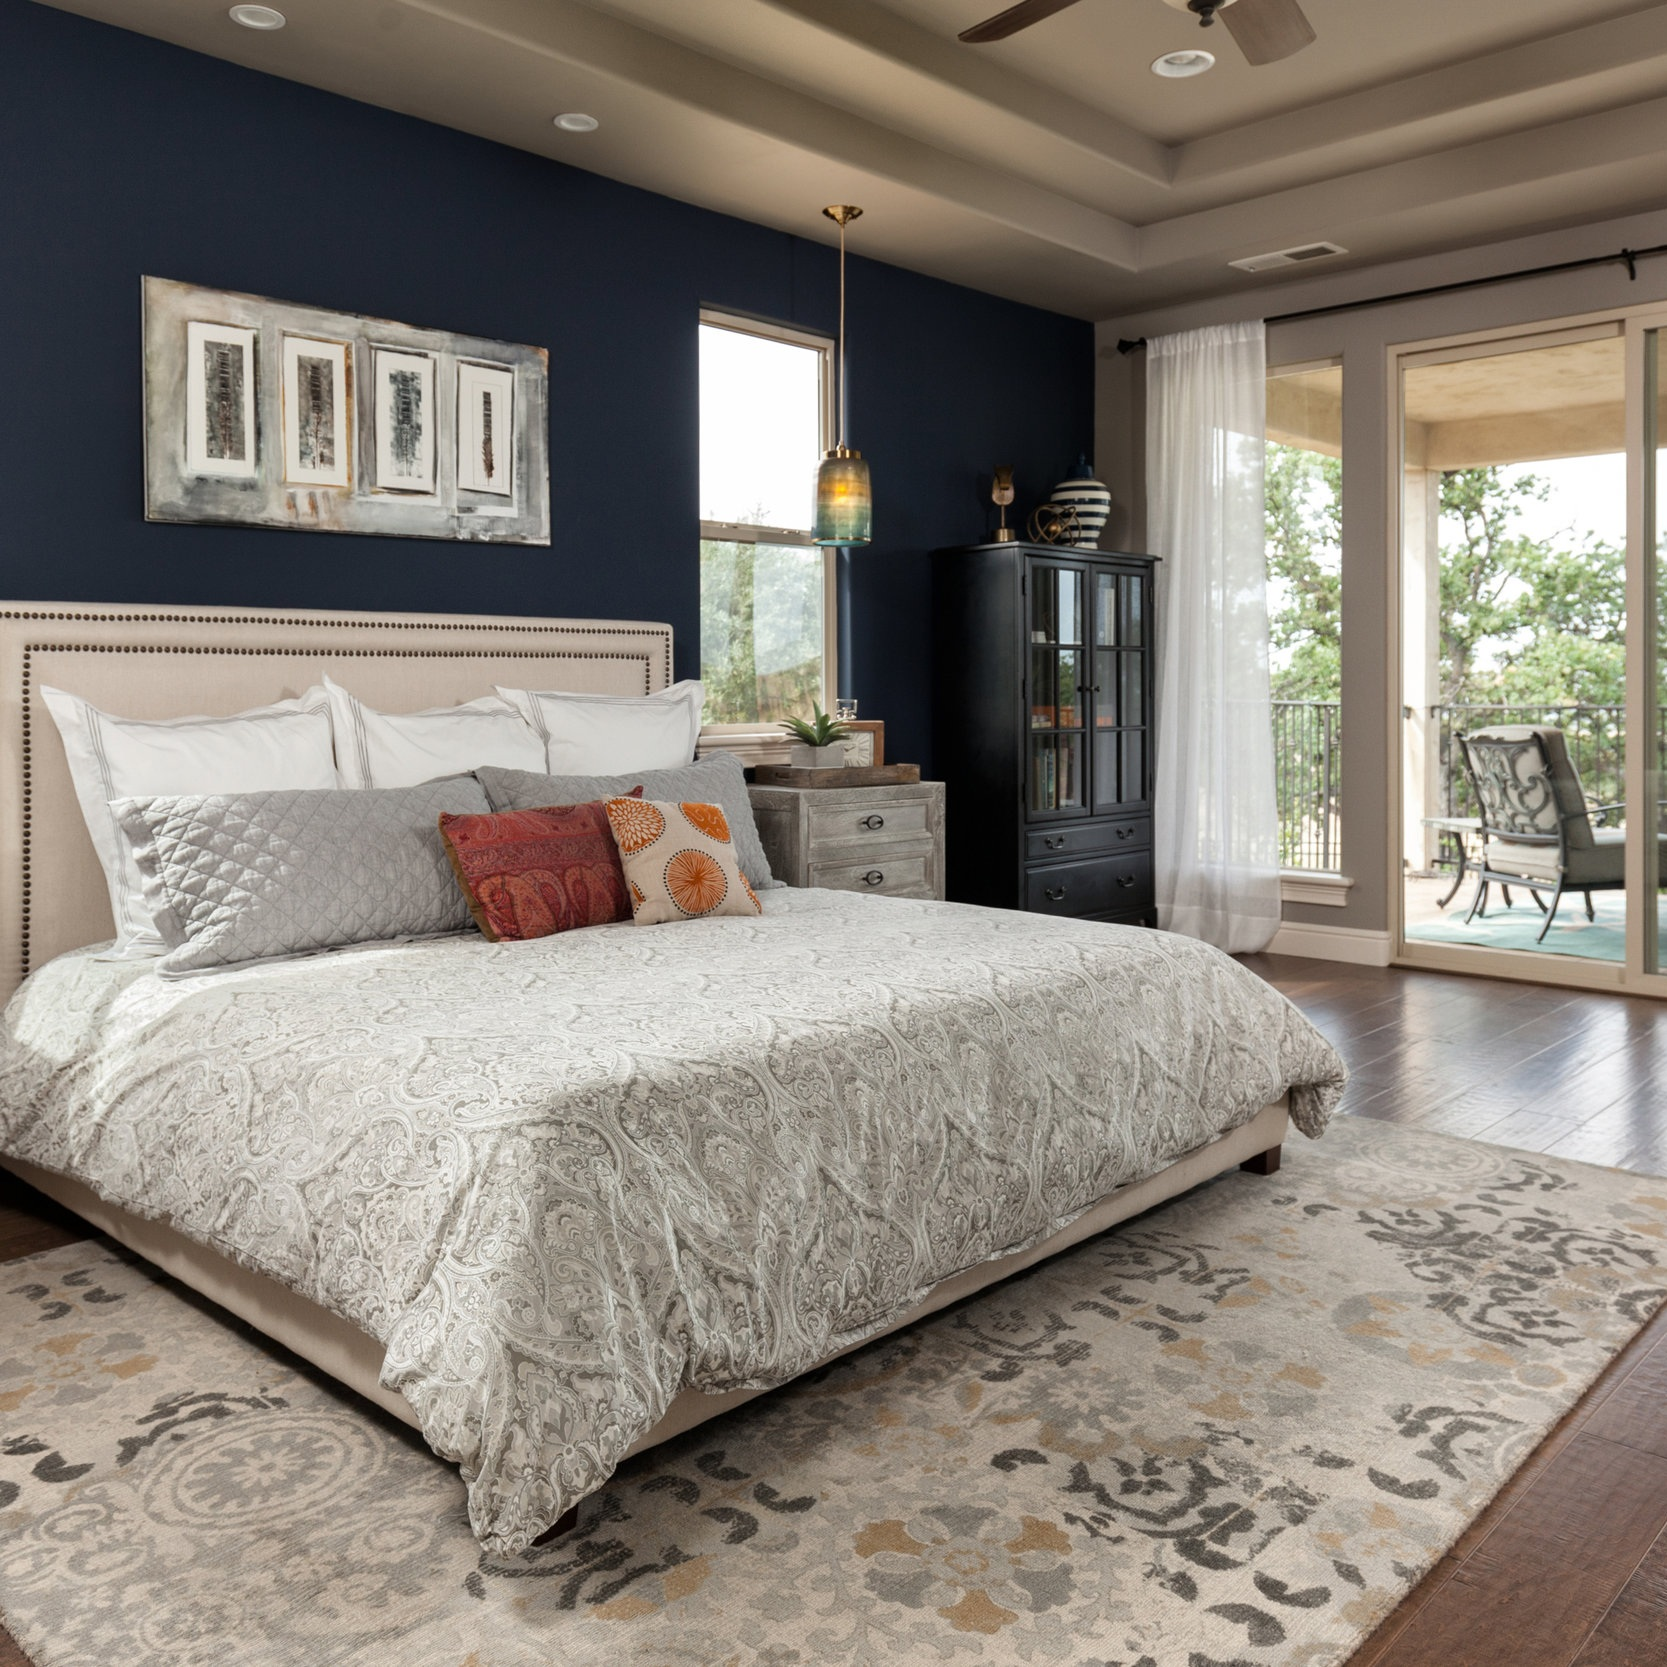 Summit Ridge Terrace - RUSTIC MODERN STYLE MASTER BEDROOM SUITE REMODEL